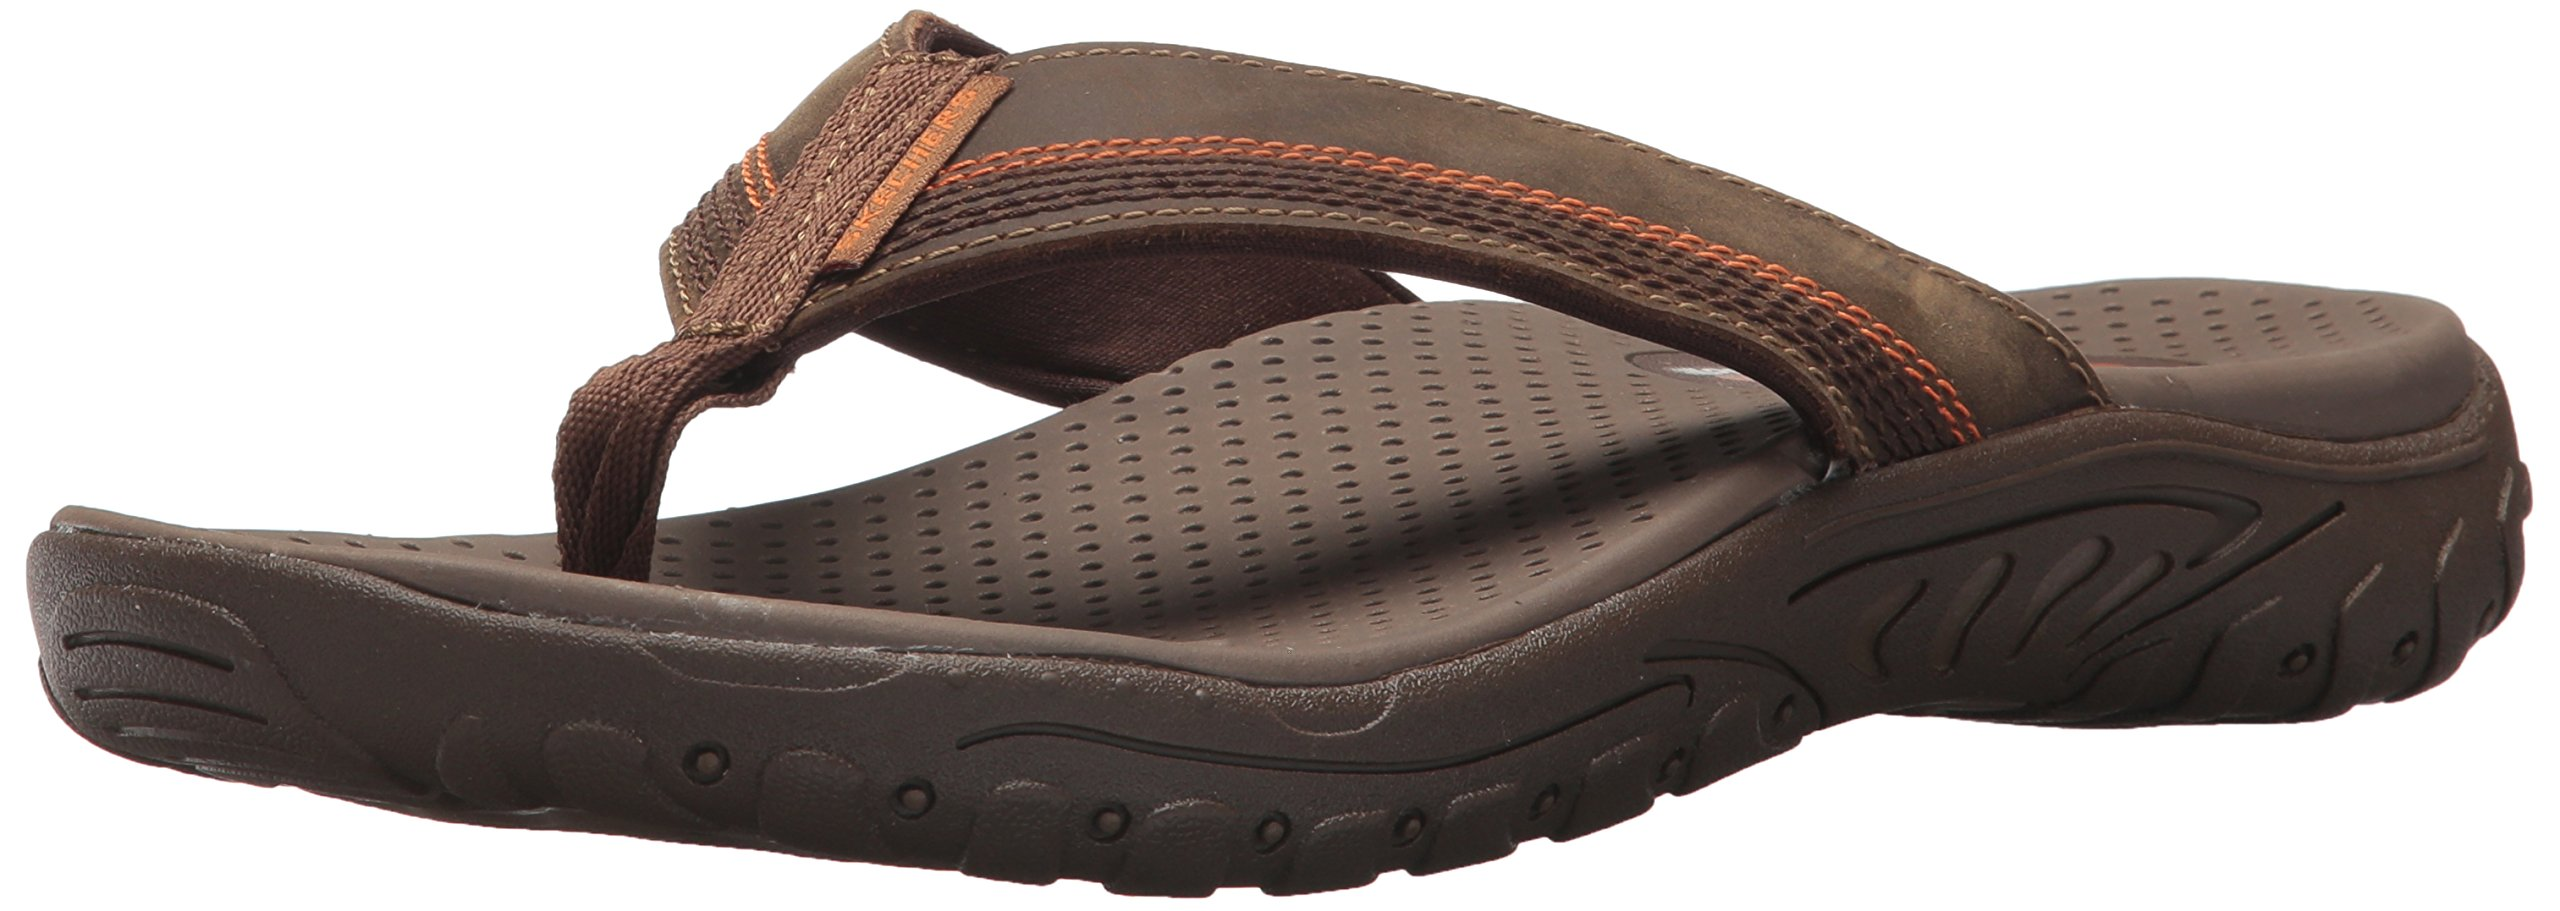 Skechers Men's Relaxed Fit-Reggae-Cobano Flip-Flop,brown,11 M US